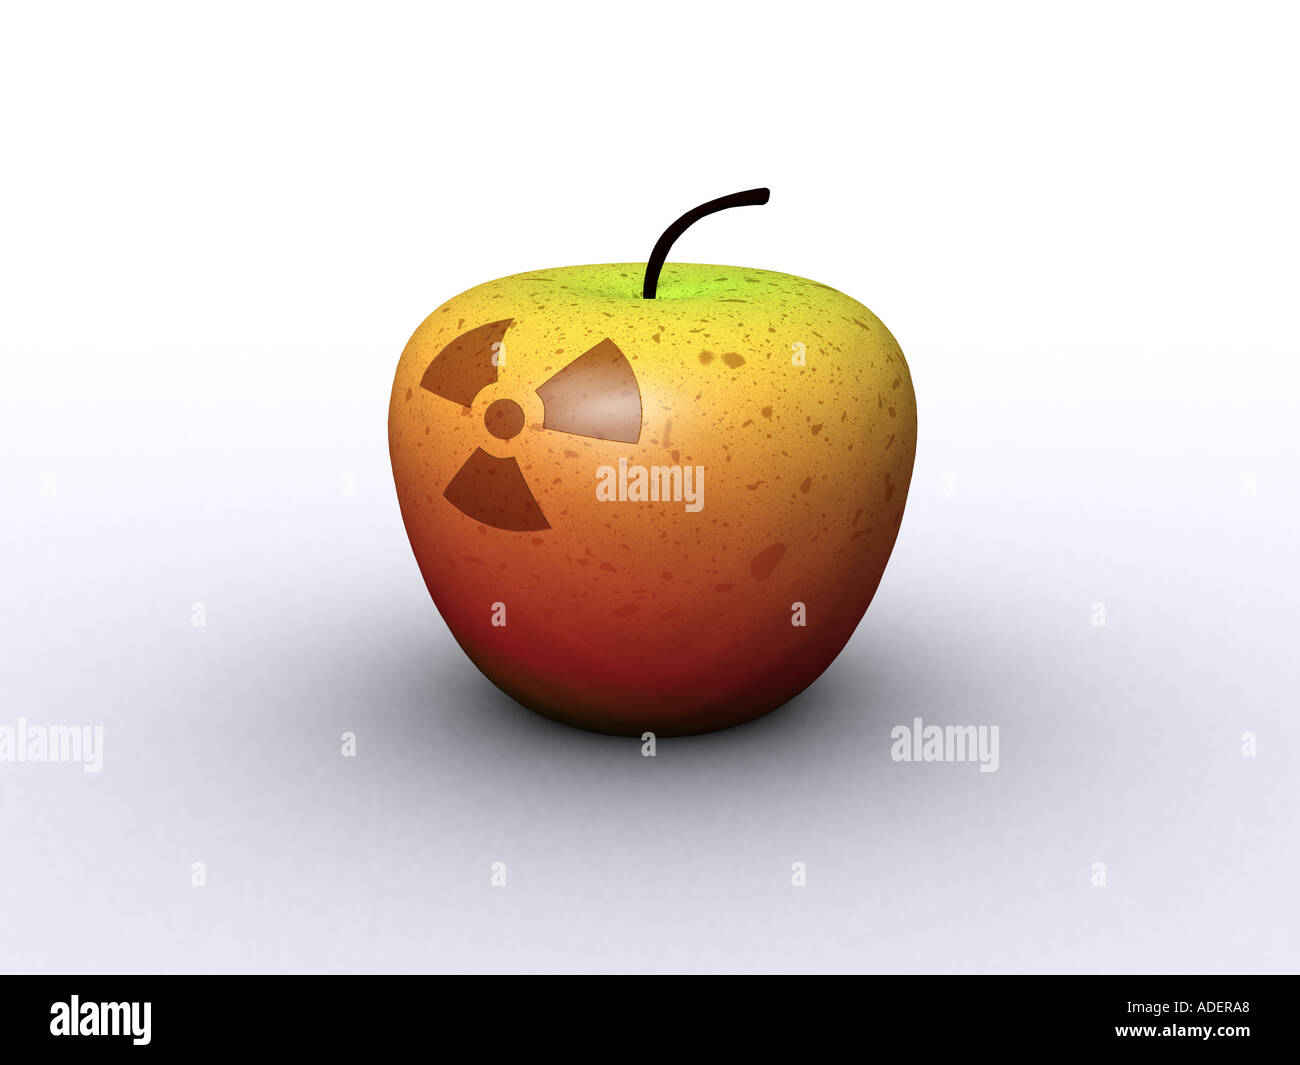 Irradiated Food Stock Photos Irradiated Food Stock Images Alamy